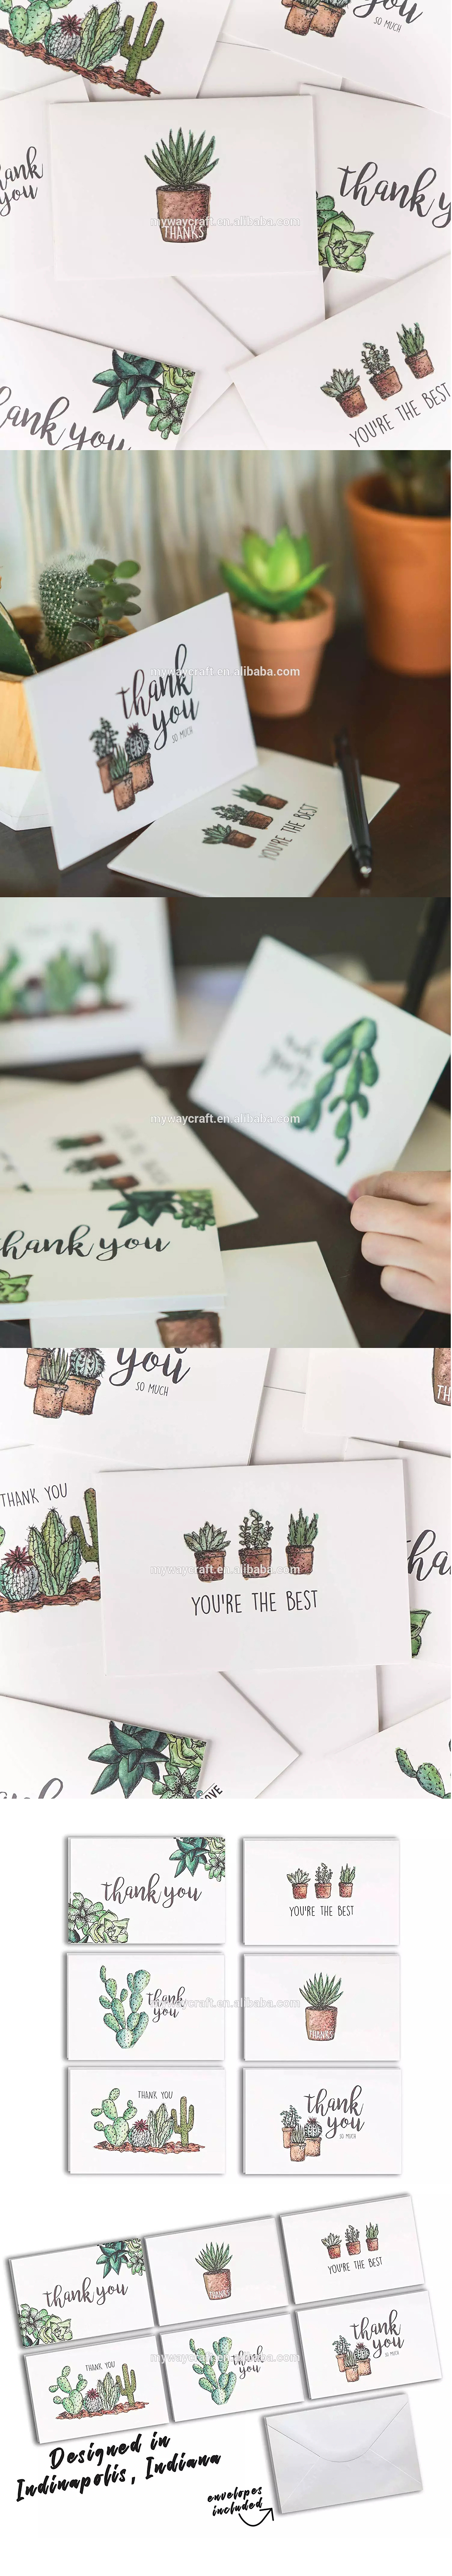 Myway luxury custom thank you card with envelope,greeting cards printing